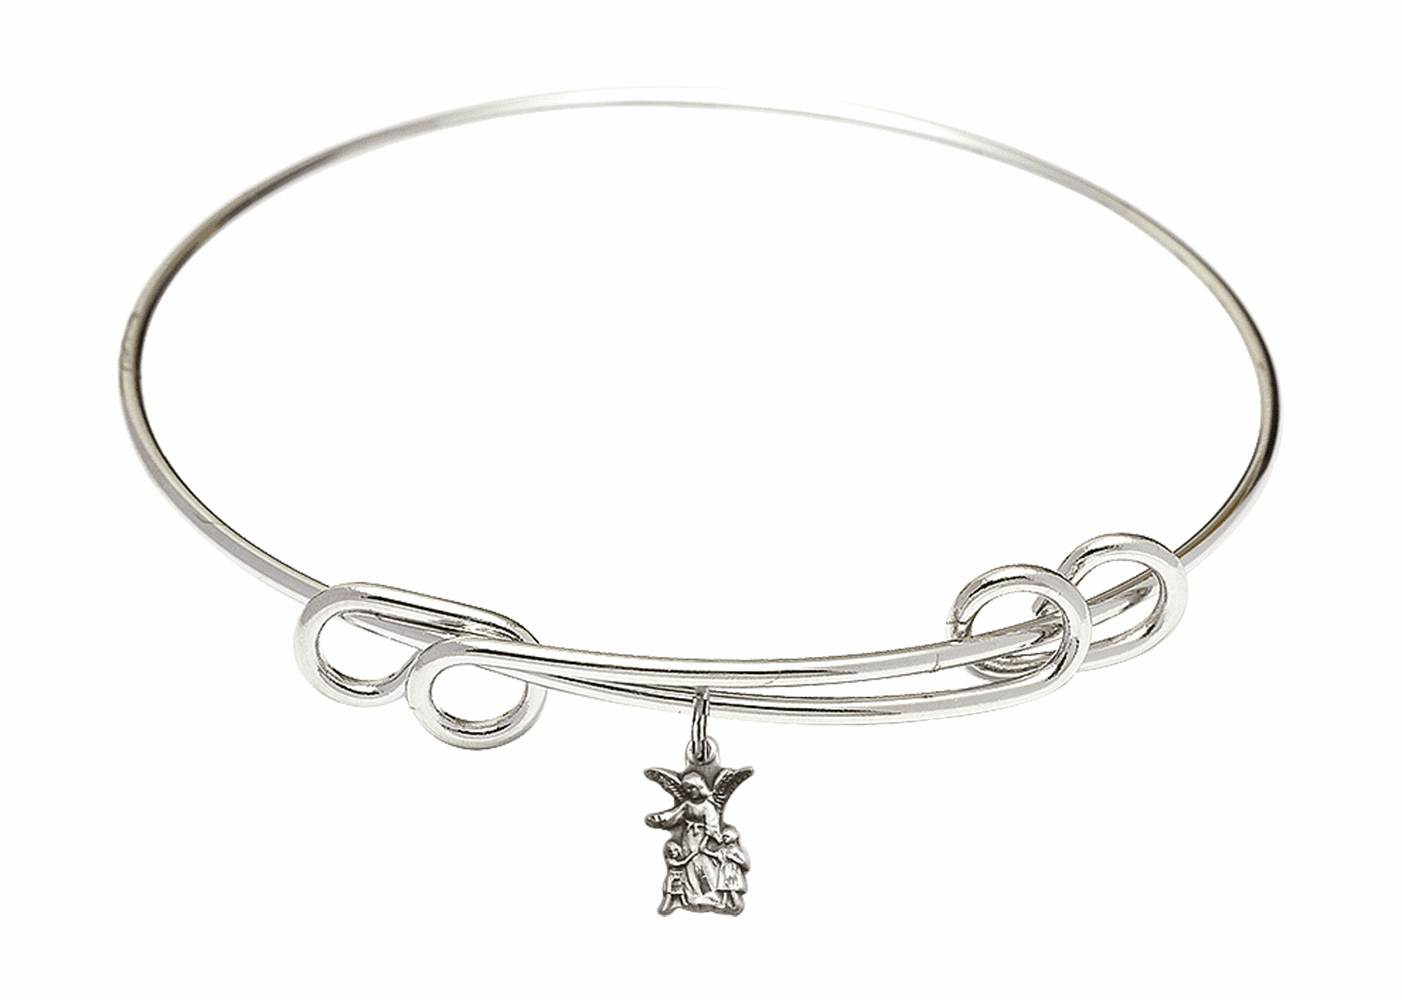 Round Double Loop Bangle Bracelet w/Guardian Angel Figure Sterling Silver Charm by Bliss Mfg